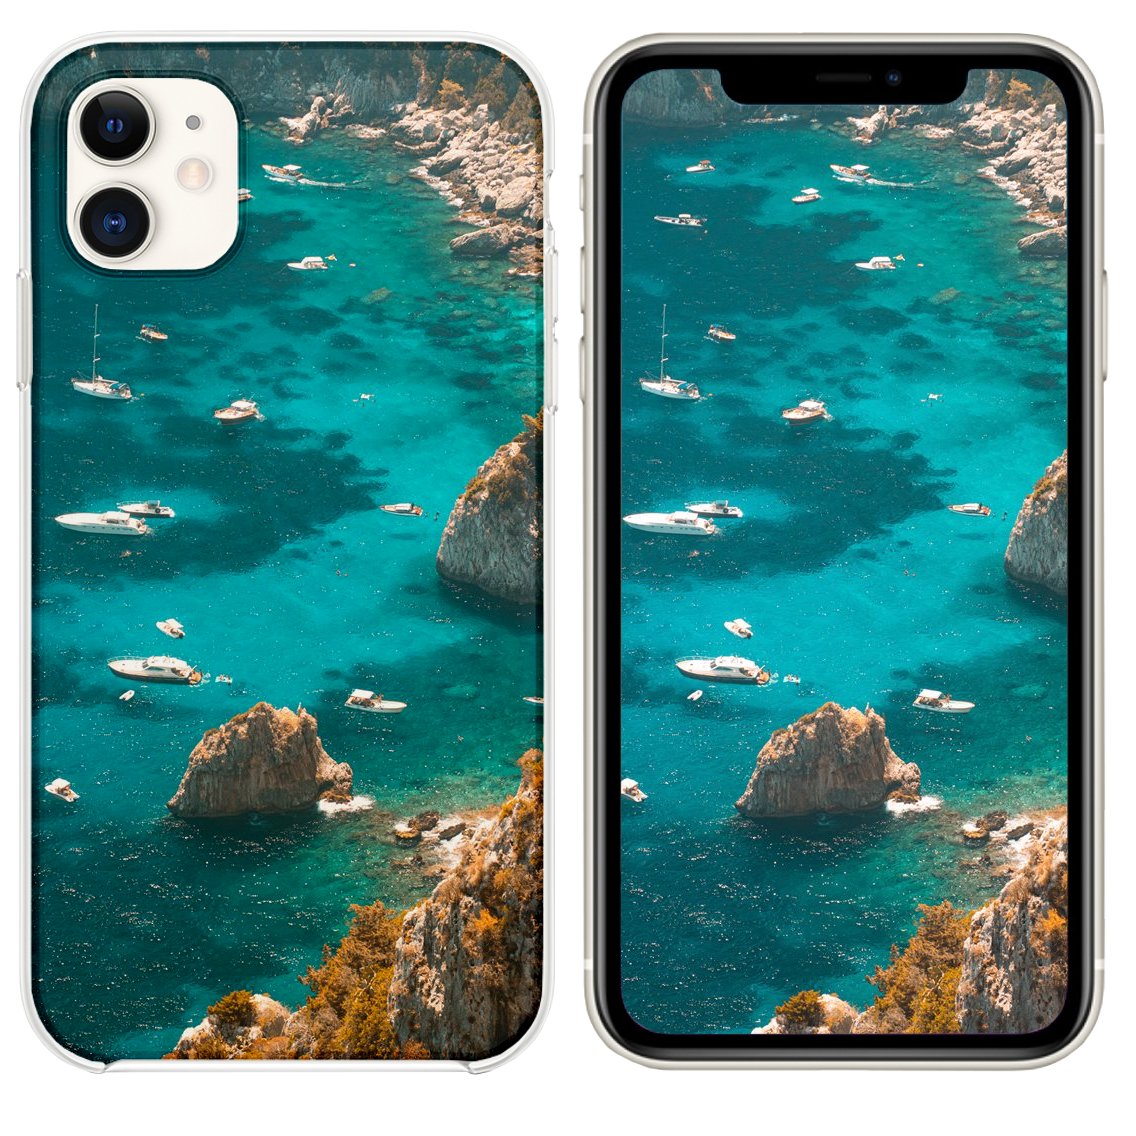 Boats Near Seashore Iphone 11 Case And Wallpaper Iphone Case Covers Iphone Iphone 11